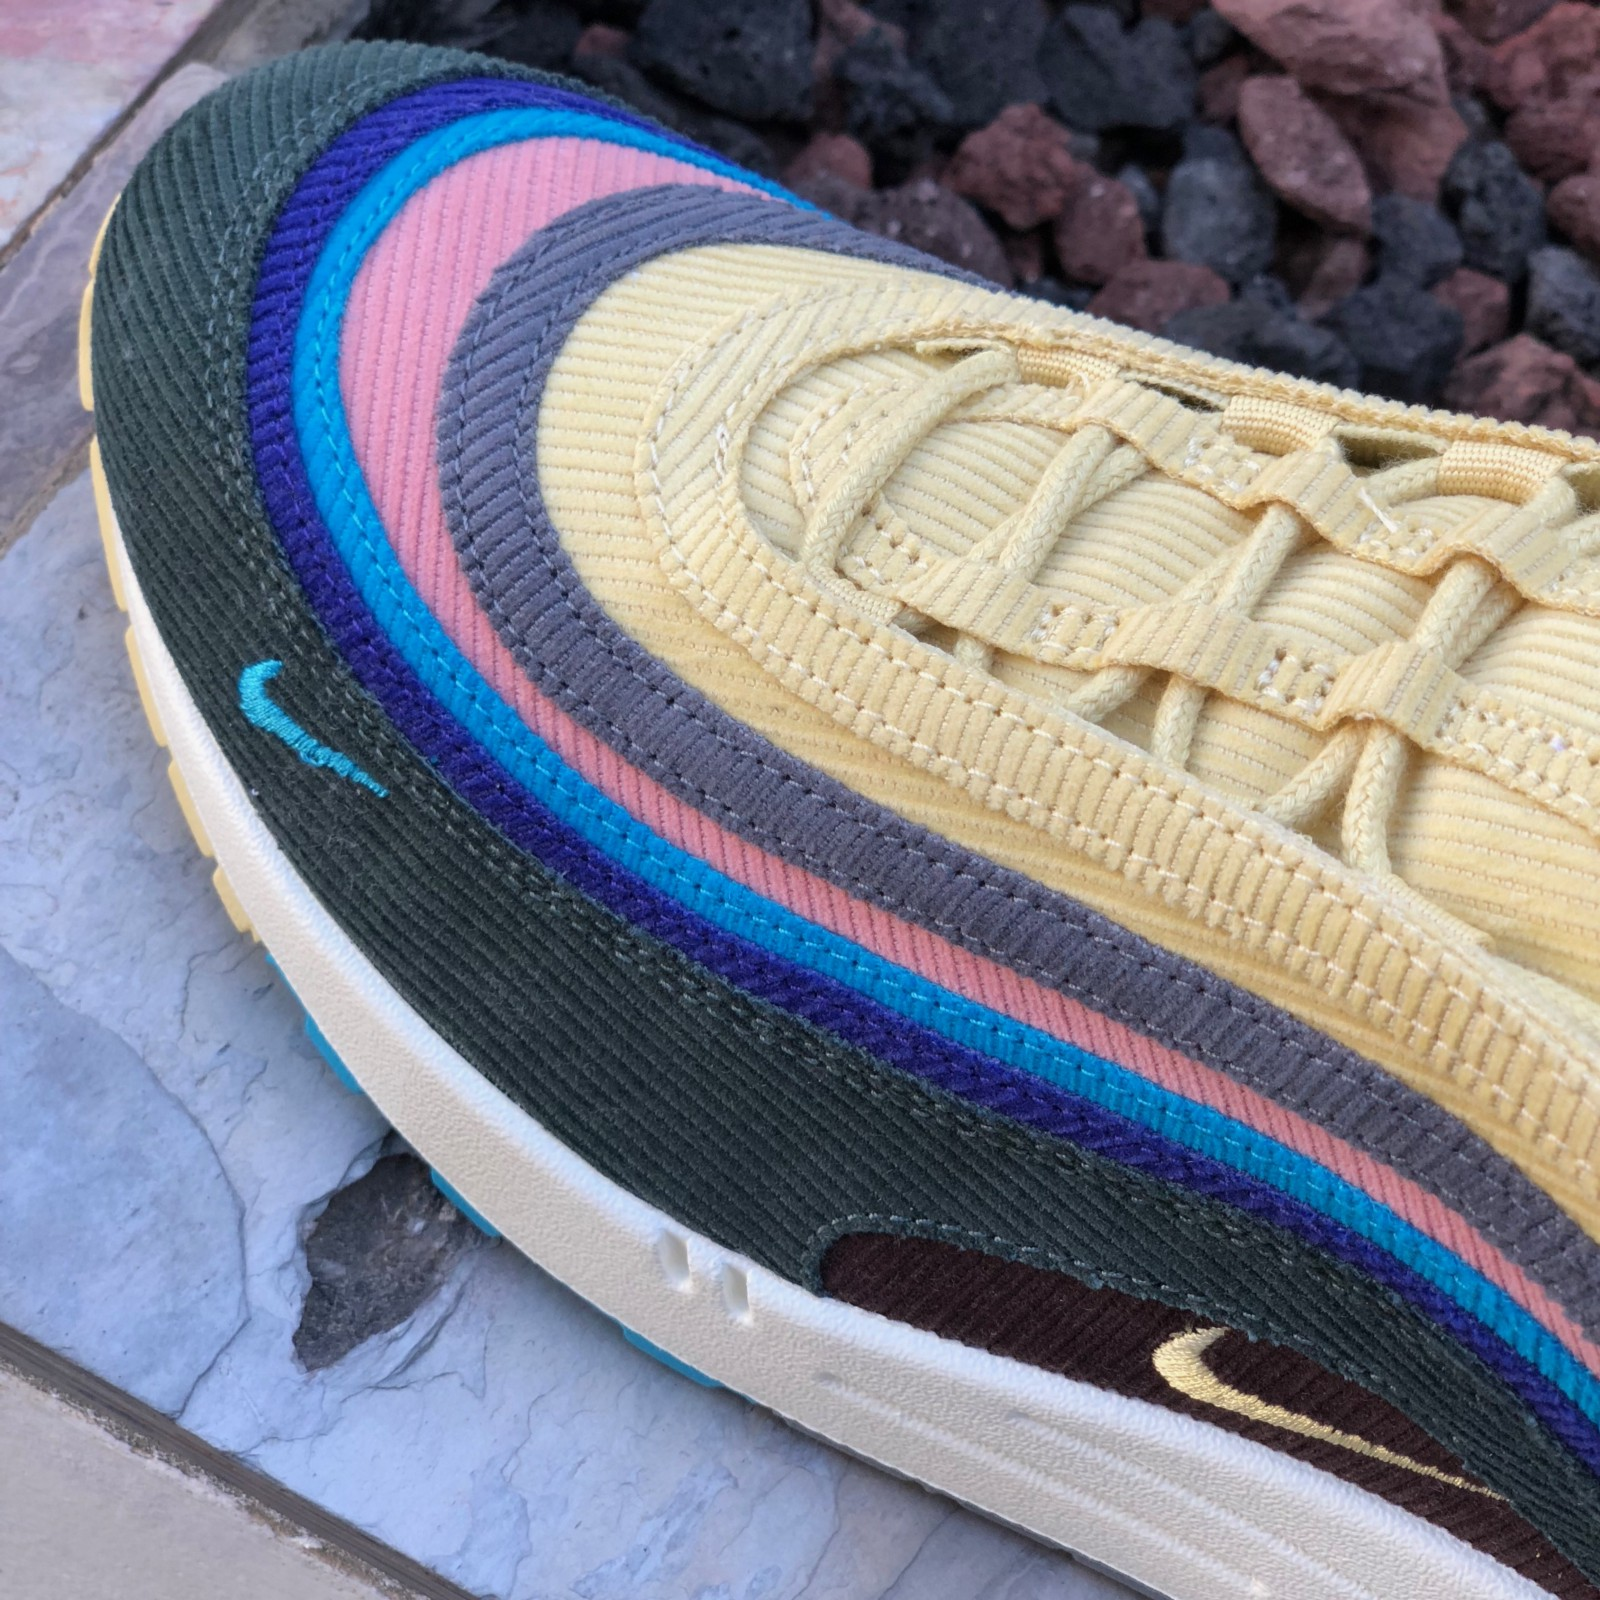 pretty nice 892cd 0318d The upper of the shoe is taken from the Air Max 97 s design. The order of the  colors go from brown, dark green, dark blue, baby blue, pink, grey, ...